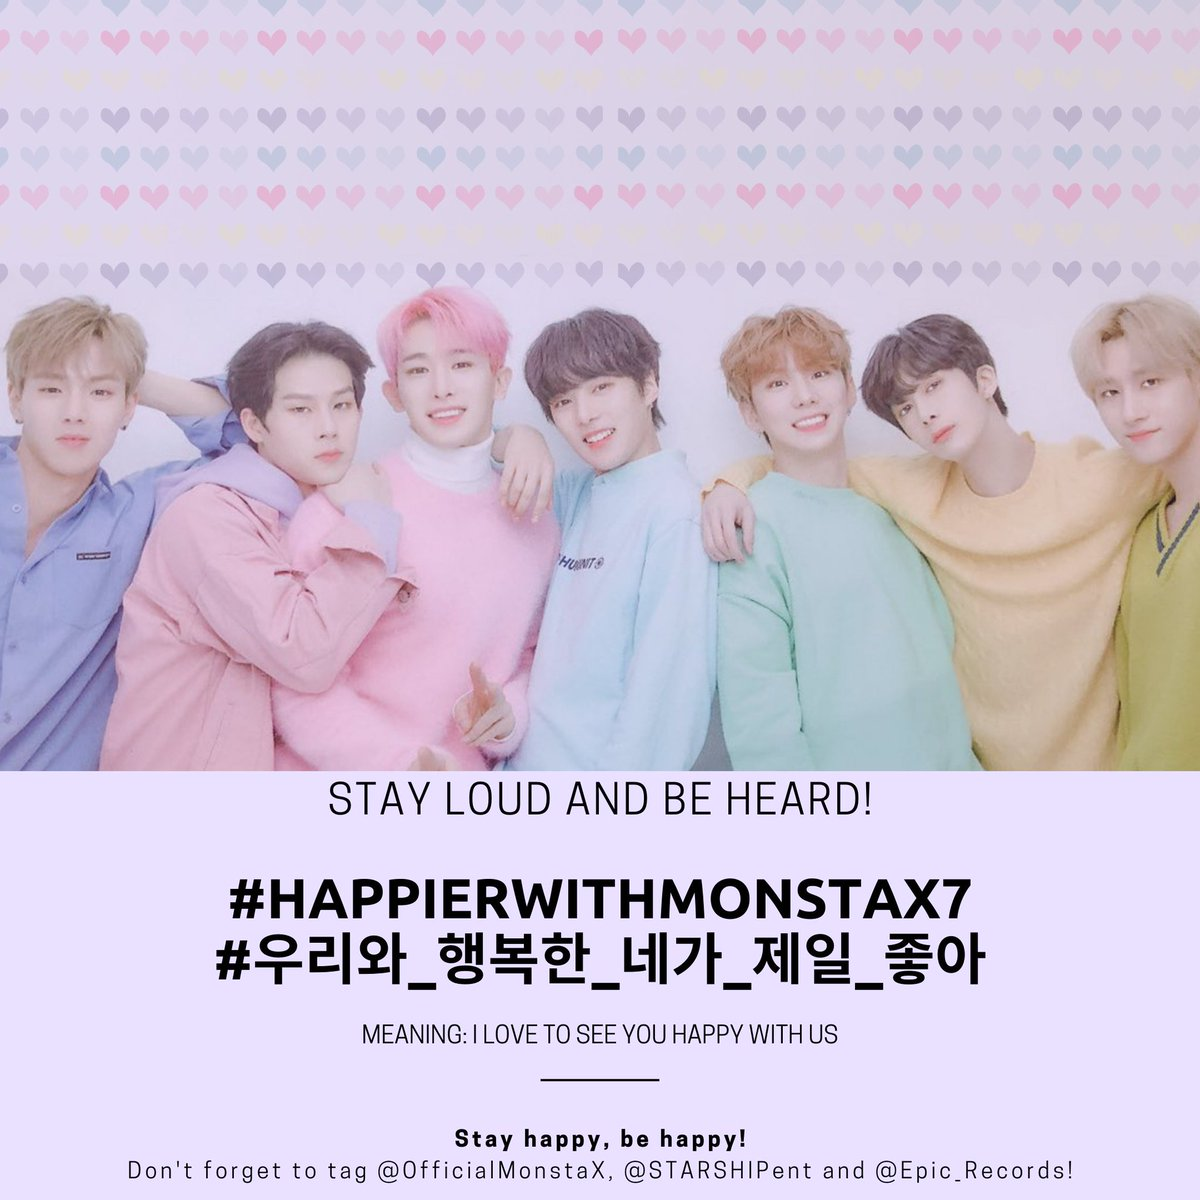 #HappierWithMonstaX7 #우리와_행복한_네가_제일_좋아 - I love to see you happy with us  @OfficialMonstaX  @STARSHIPent